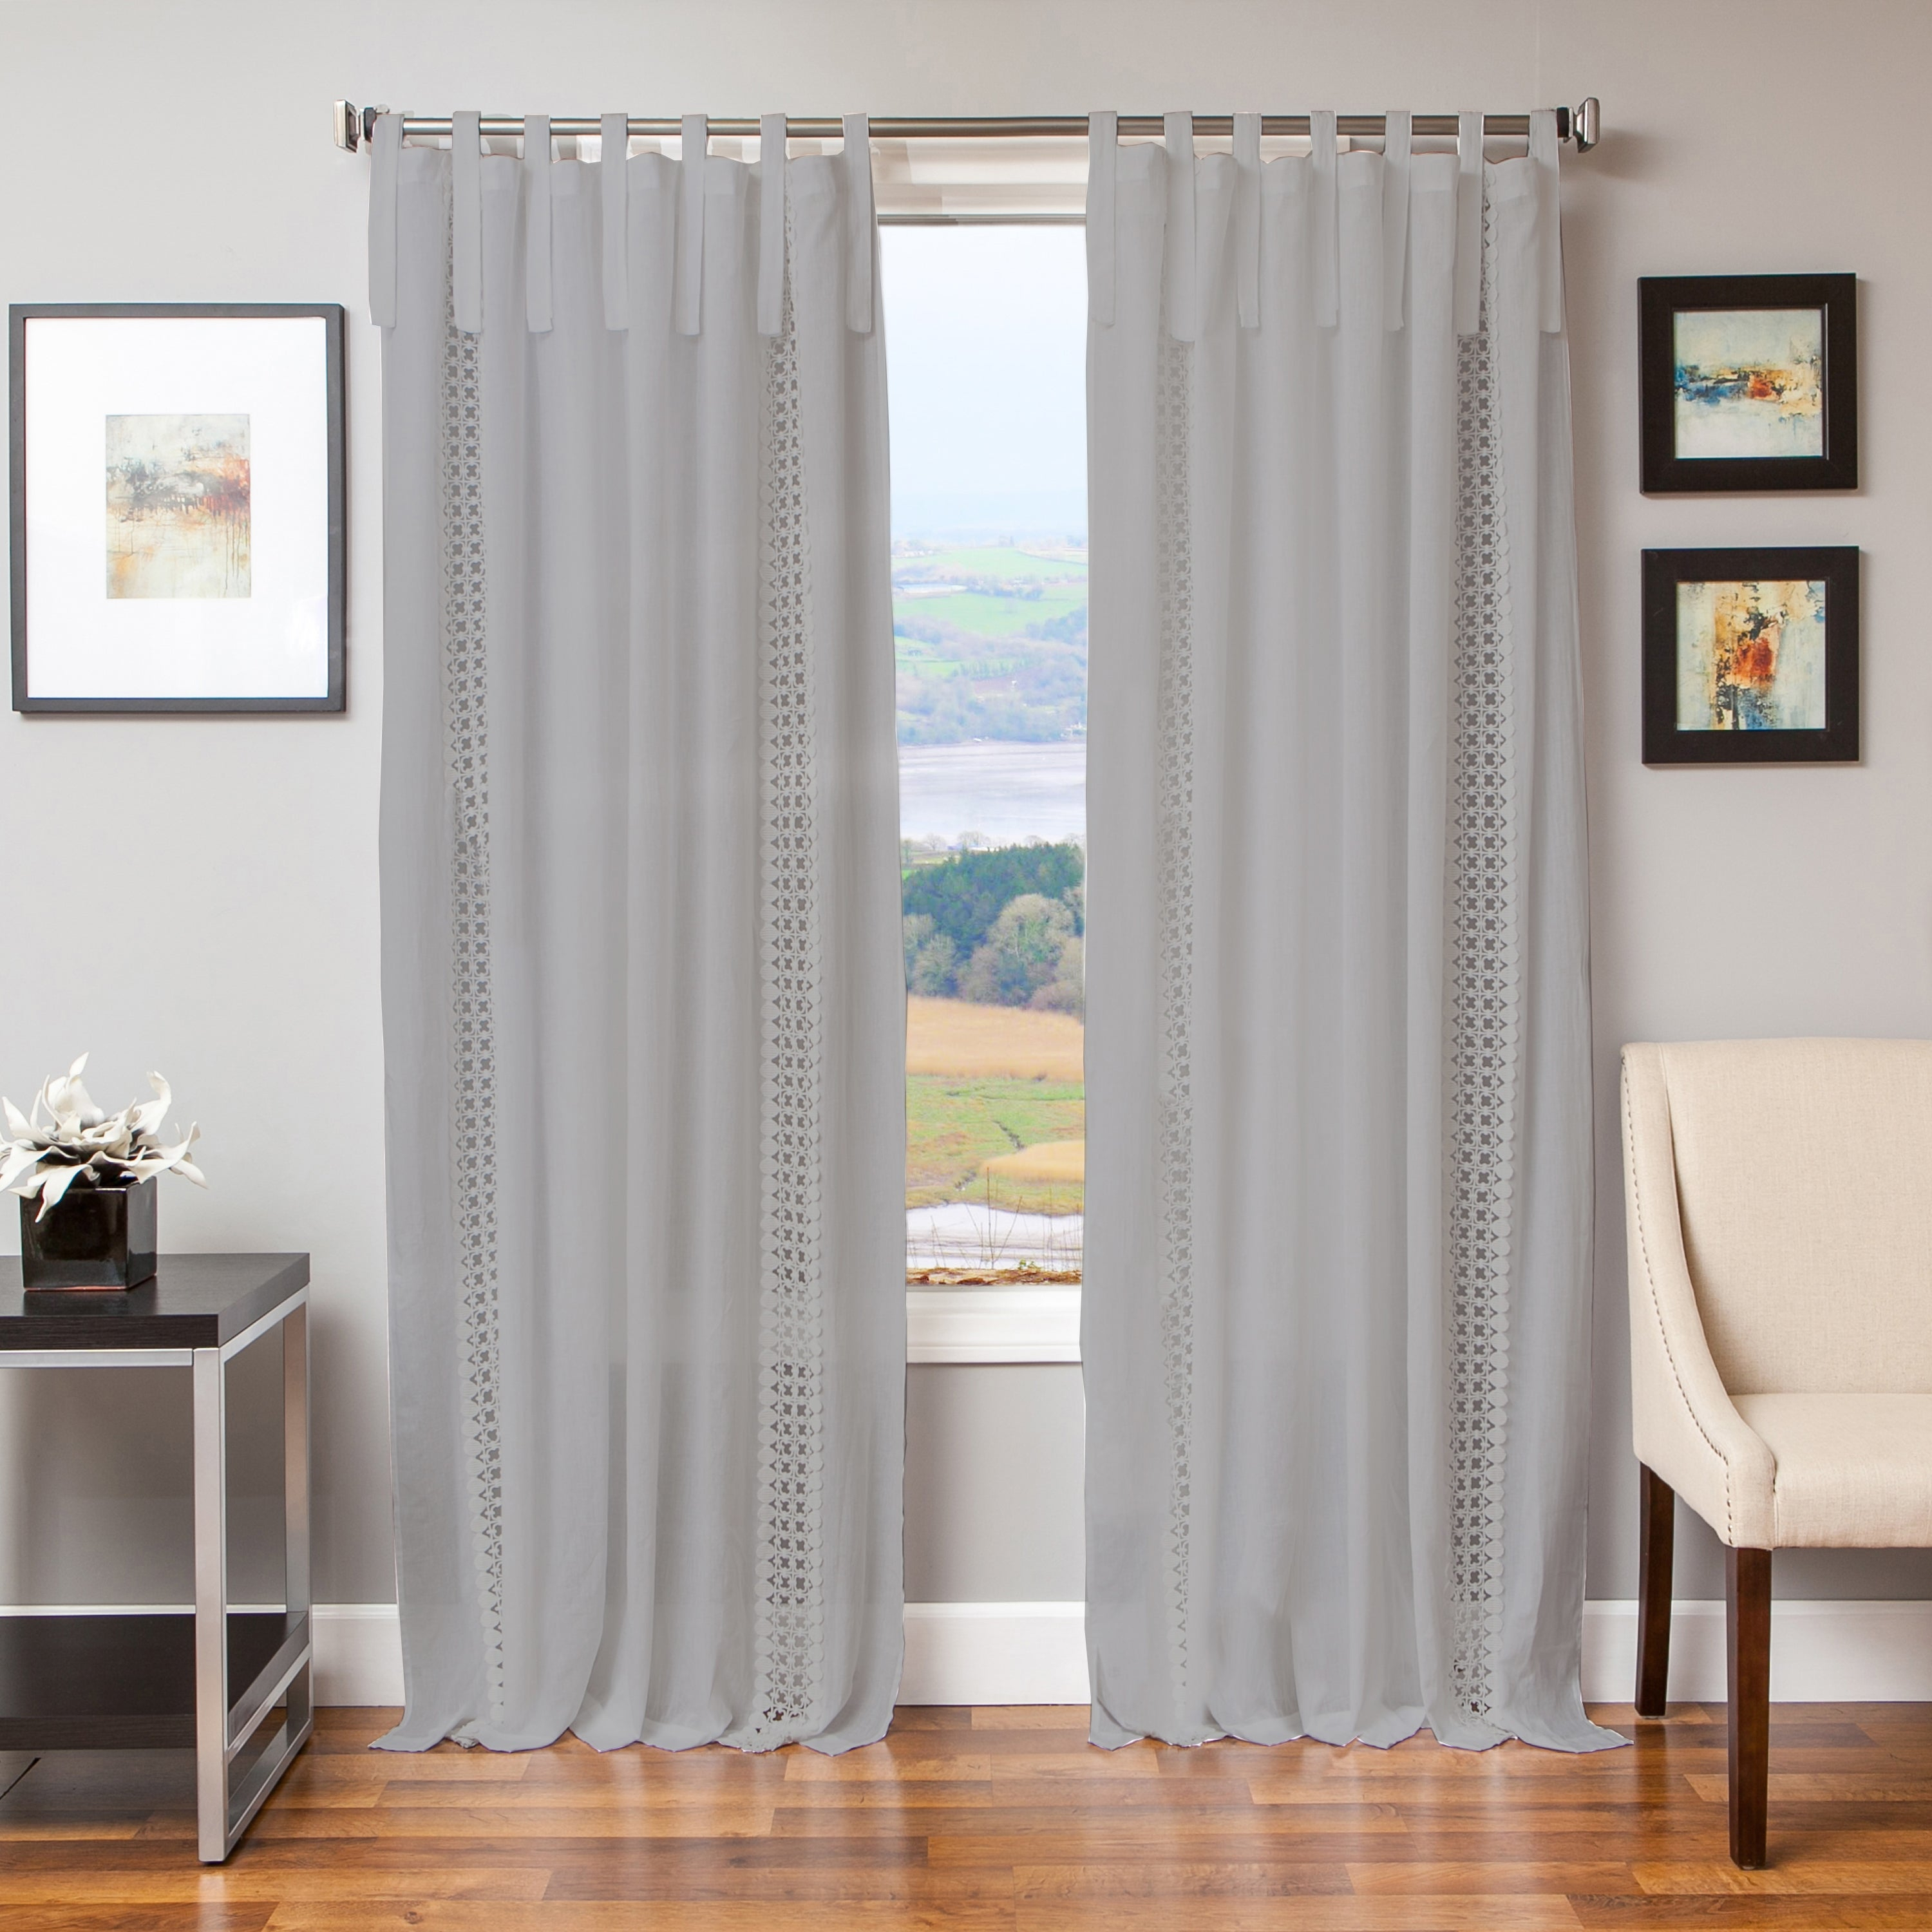 Details About Softline Tie Tab Cotton And Linen Macrame Curtain Panel Pertaining To Archaeo Washed Cotton Twist Tab Single Curtain Panels (View 13 of 20)